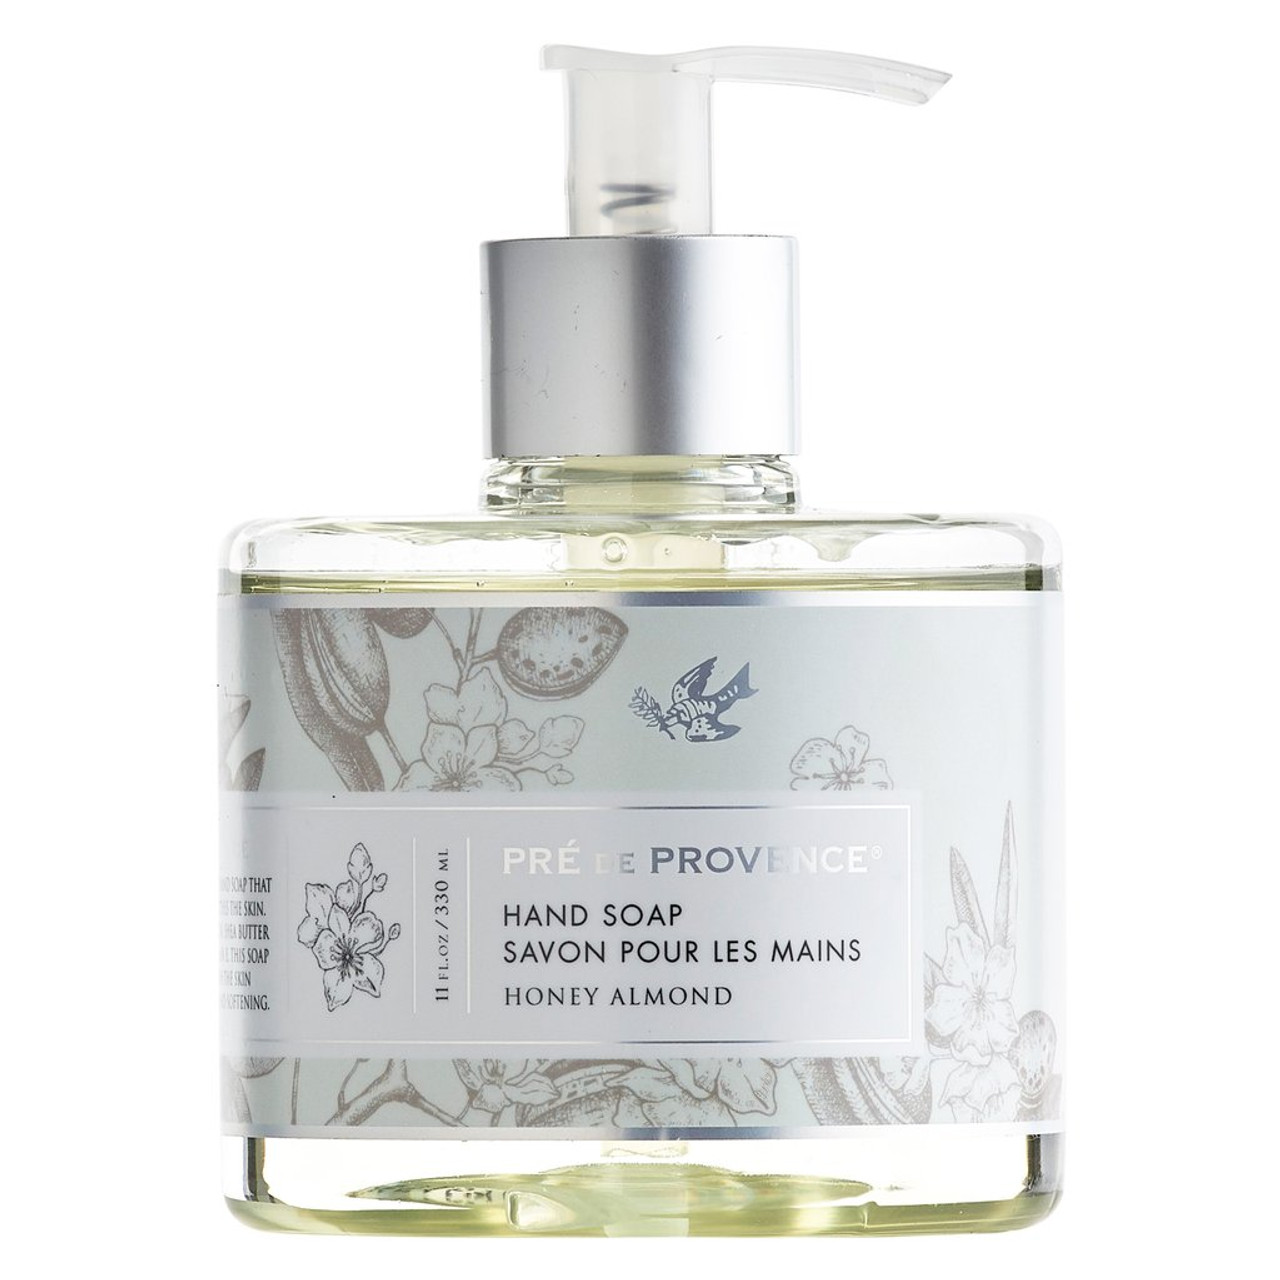 A divinely scented liquid hand soap that gently cleanses and soothes the skin. Formulated with glycerin, shea butter, hydro extract, and vitamin E. This soap is designed to nourish the skin while gently cleansing and softening.